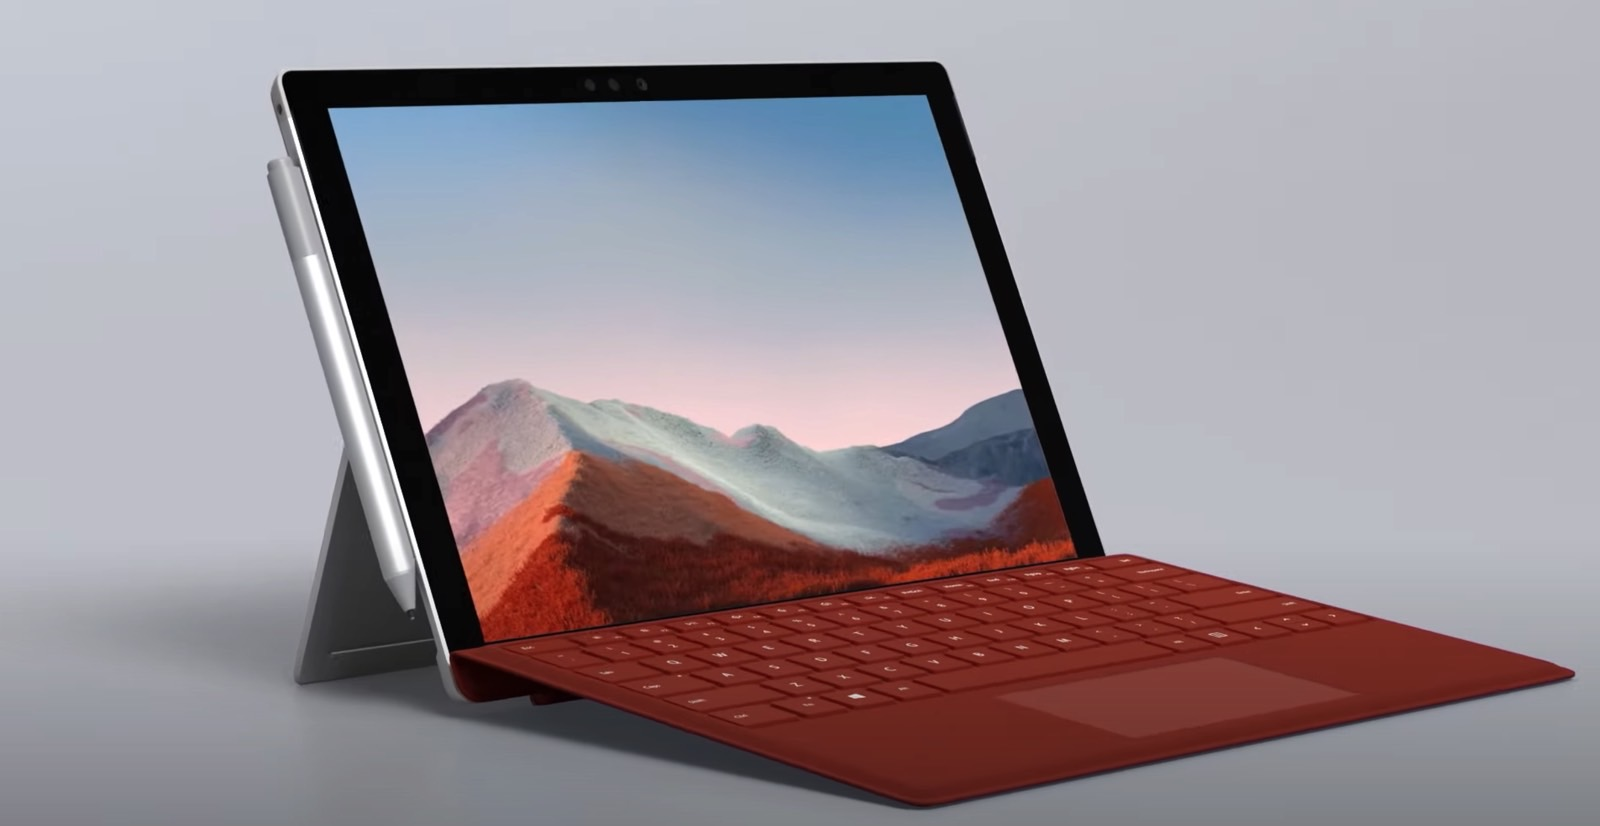 Microsoft's Surface Pro 8 specs and price just leaked at the last minute